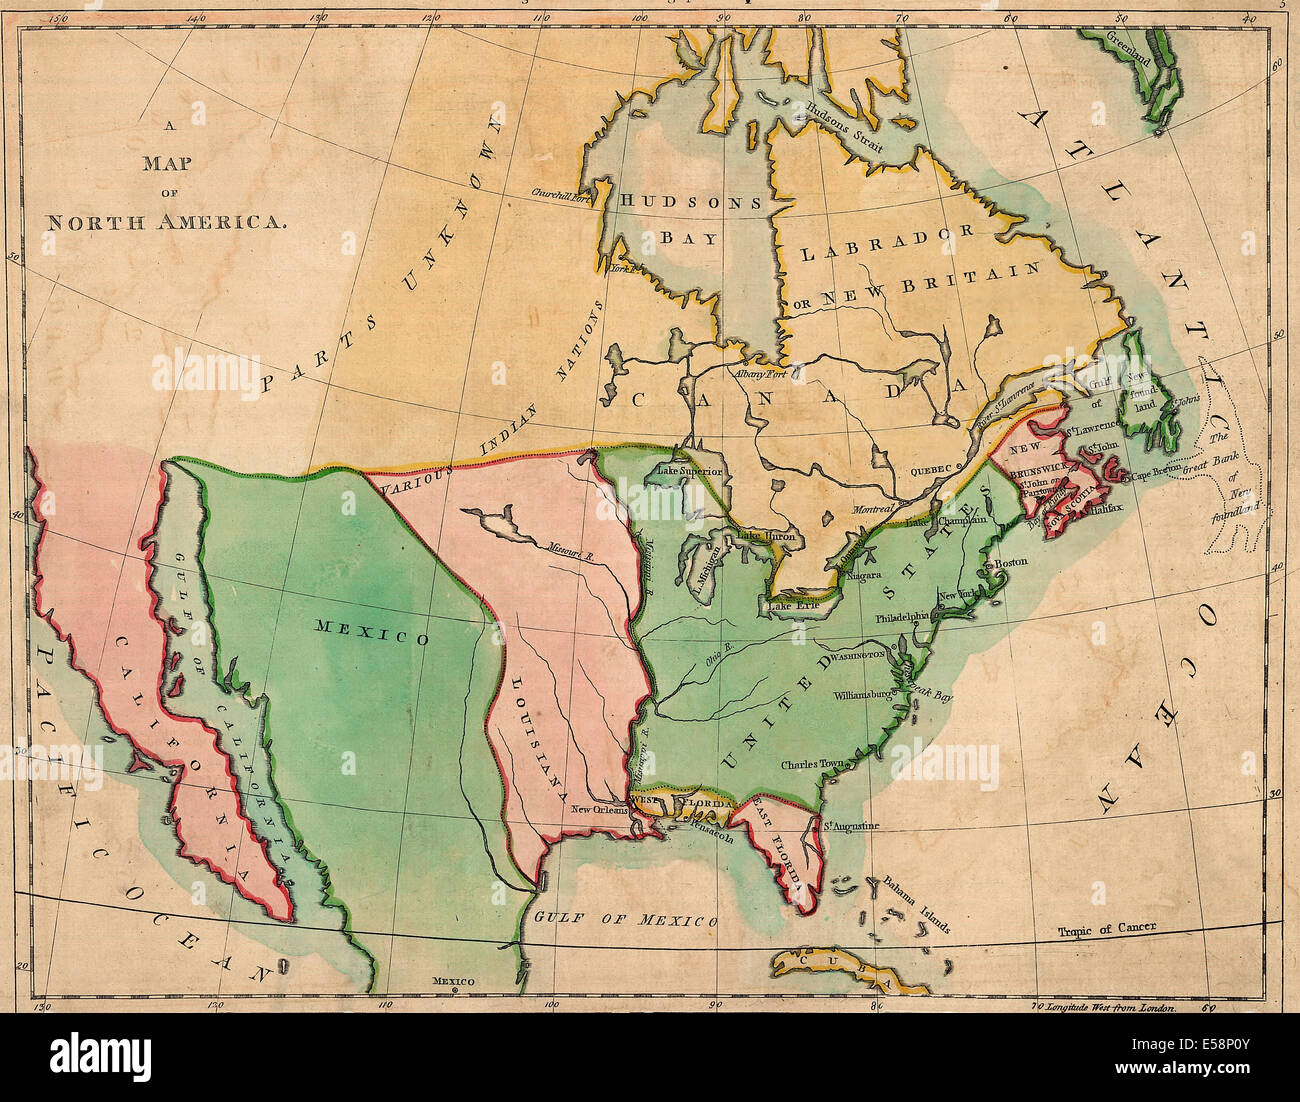 a map of north america outline of north america in correspond to the map